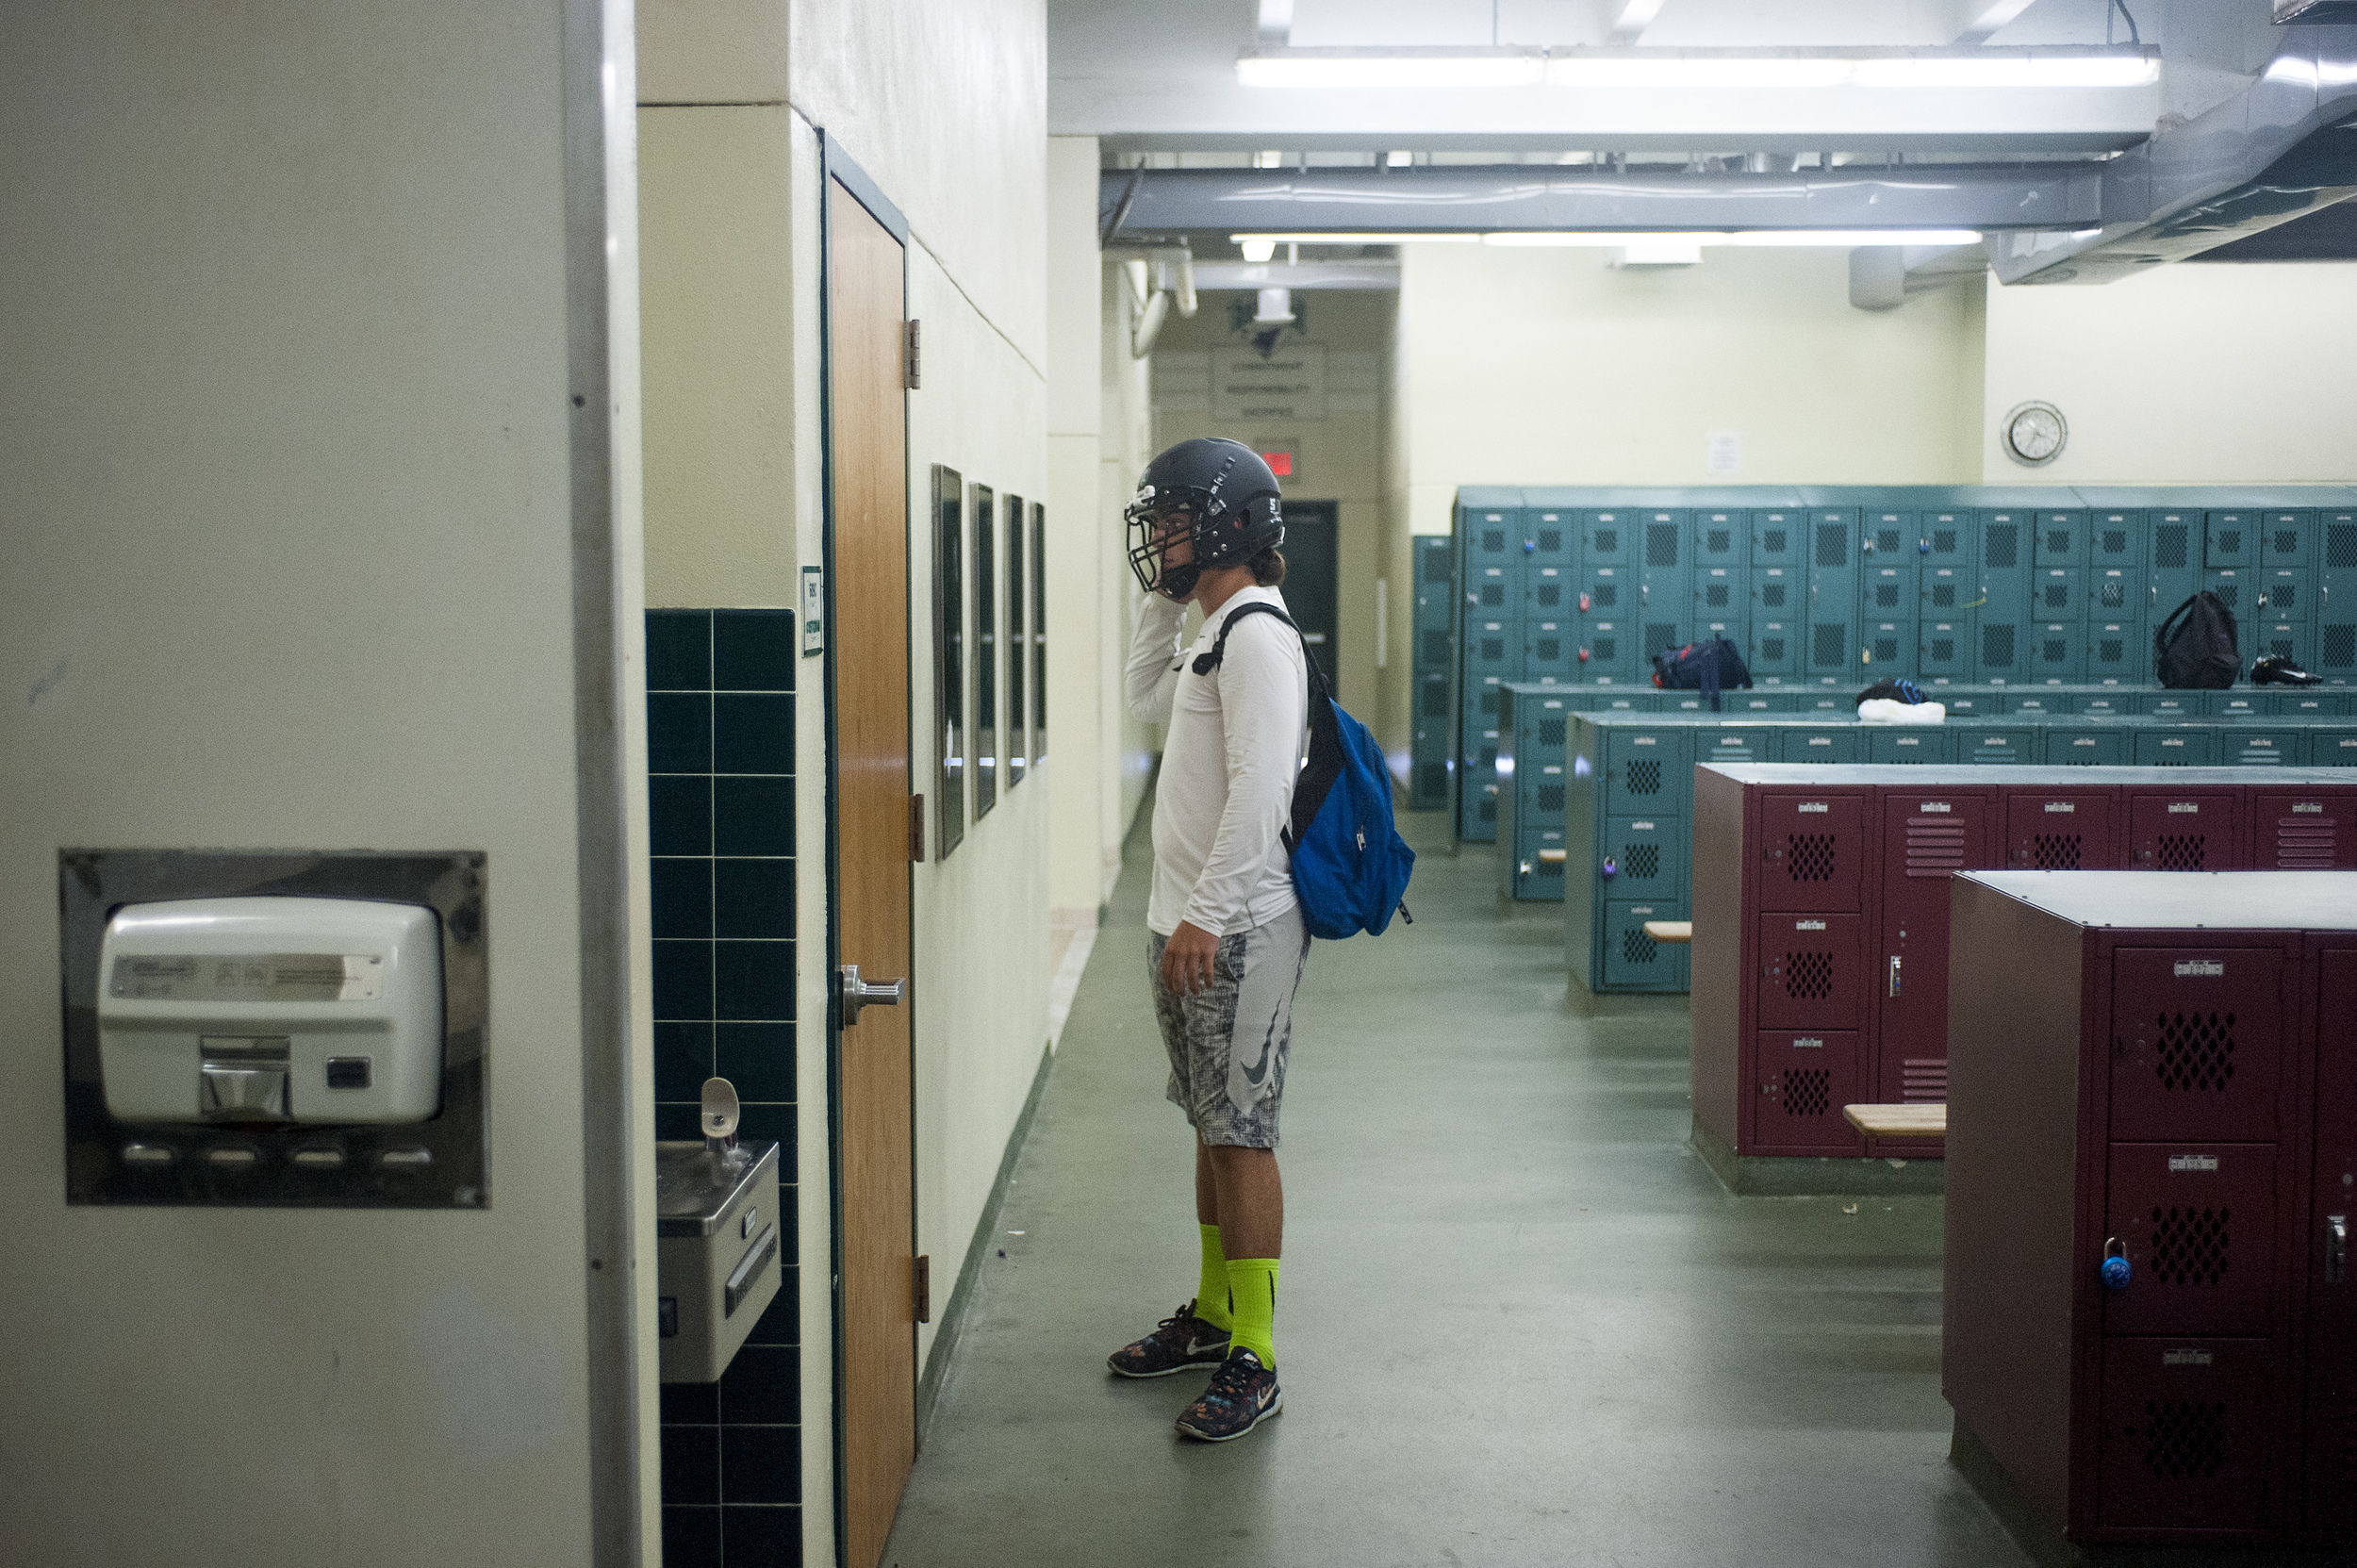 Flanagan high school junior linebacker Lucas Vallee looks at himself with his helmet on in the mirror inside the locker room prior to heading out to the field for the first practice of the high school football season at Flanagan High School on Monday, Aug. 1, 2016. The reigning state champions look to repeat again despite the loss of key players from last year.